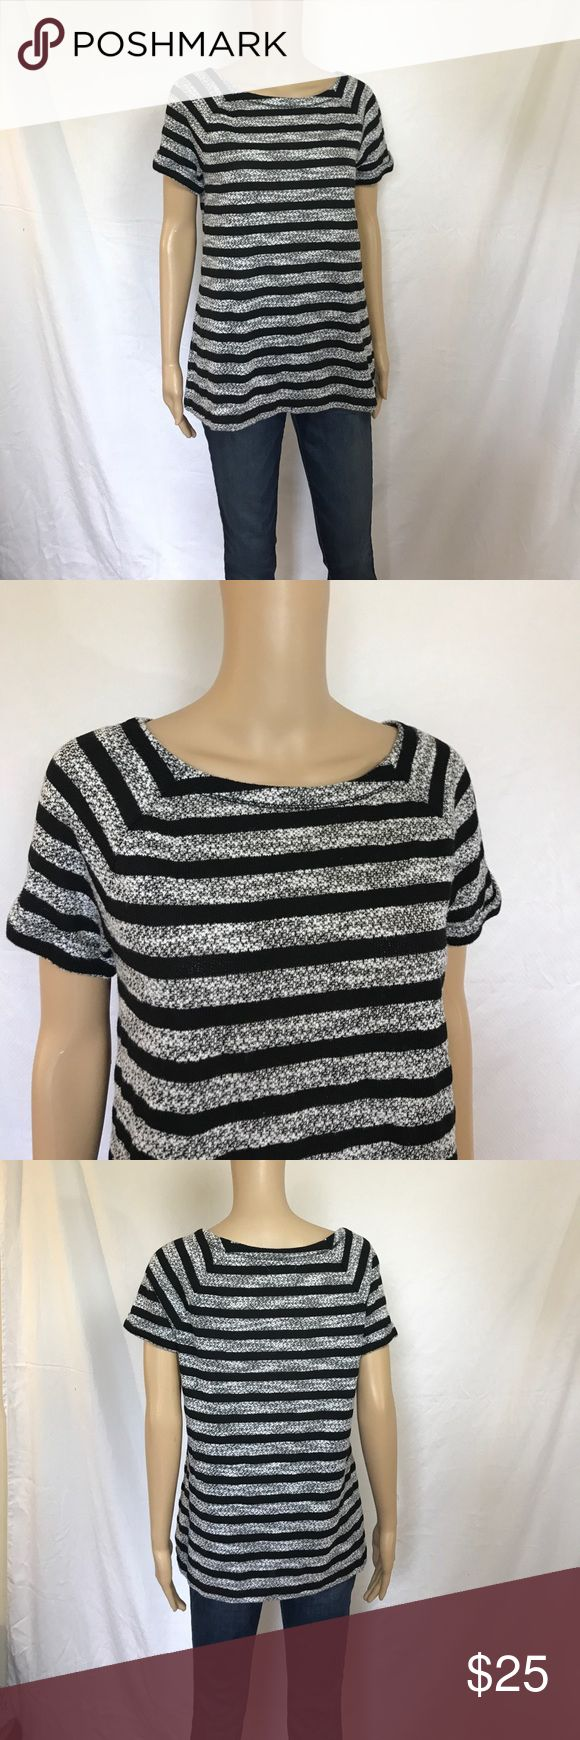 Lou & Grey short sleeve top size medium Extremely soft and comfortable! This top is in excellent condition. Size medium it has a 37 inch past and is approximately 26 inches long. Cute little cuffed short sleeves. No holes stains or tears Lou & Grey Tops